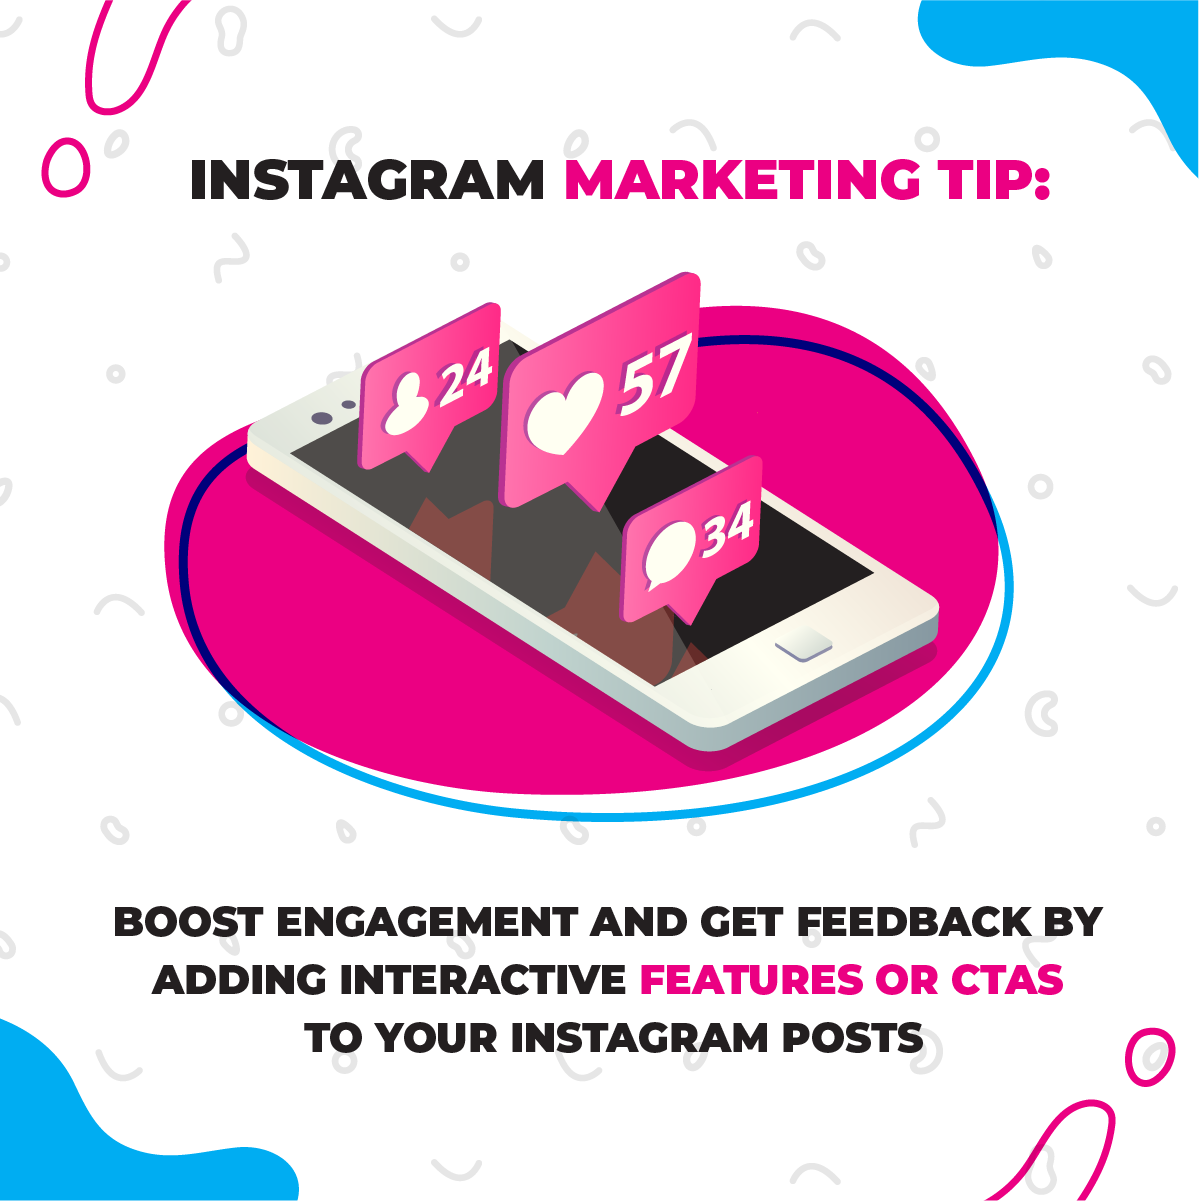 Graphic with an Instagram marketing tip: Create engagement and get feedback by adding interactive features to your Instagram posts.